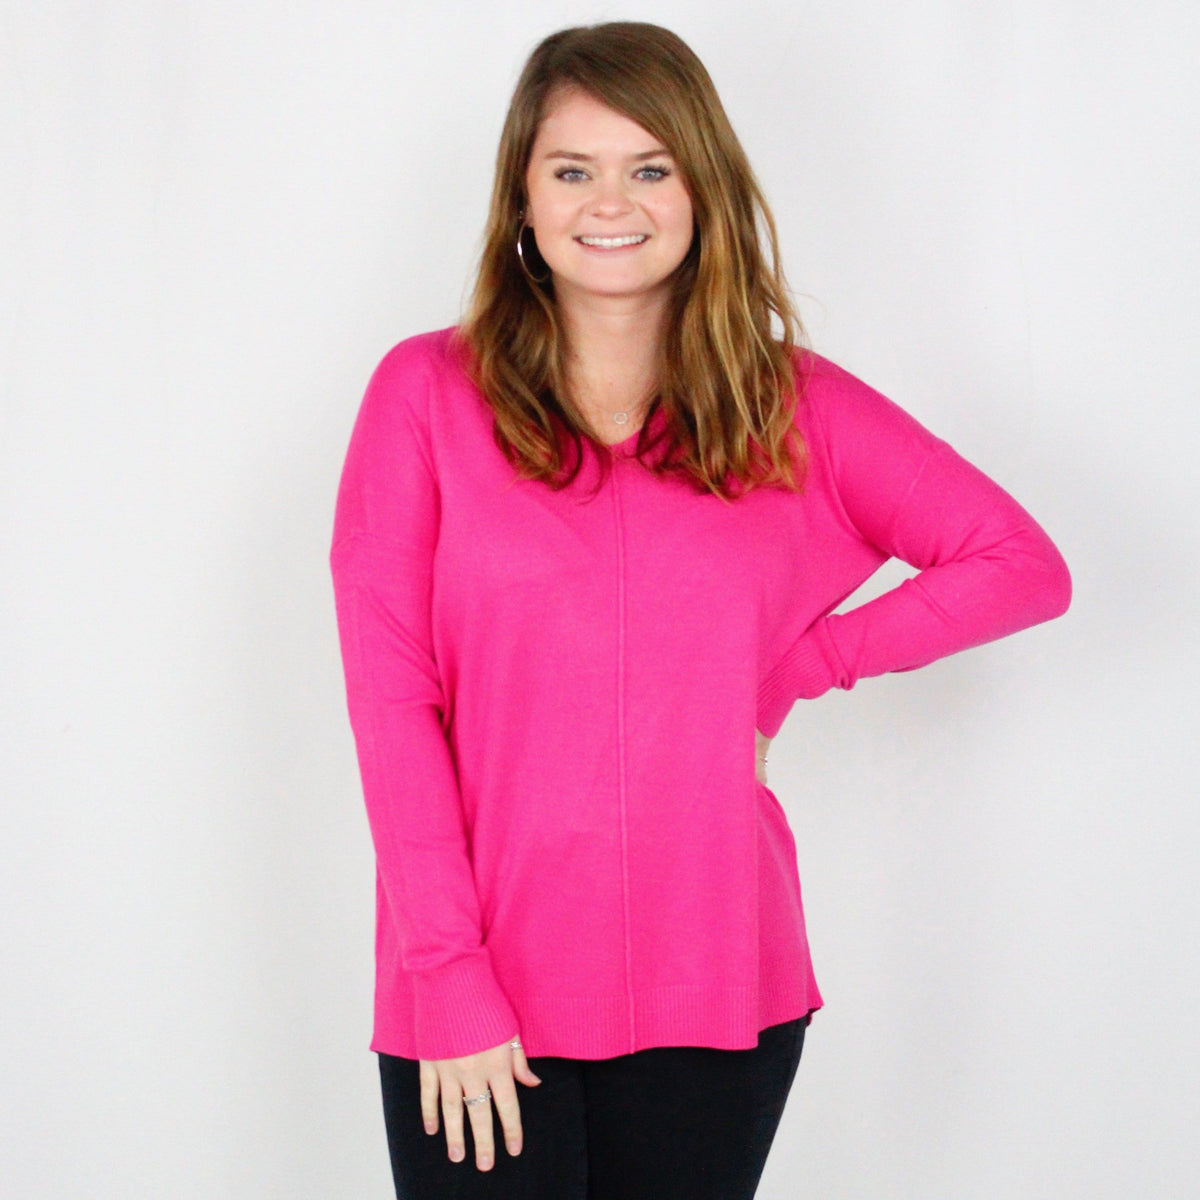 Winter Bright Vneck Sweater